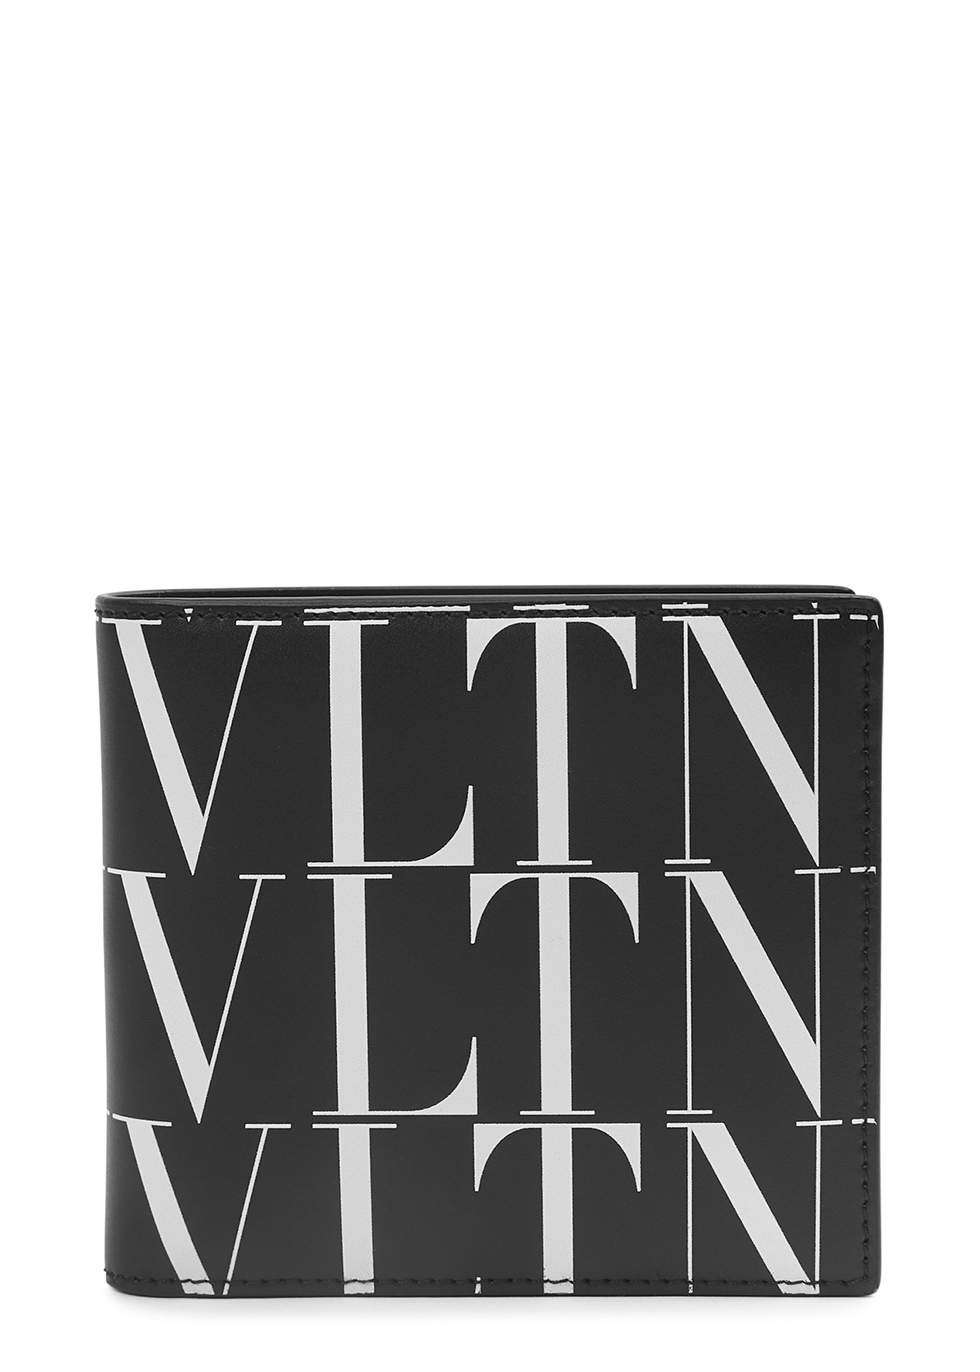 Valentino Garavani VLTN black leather wallet